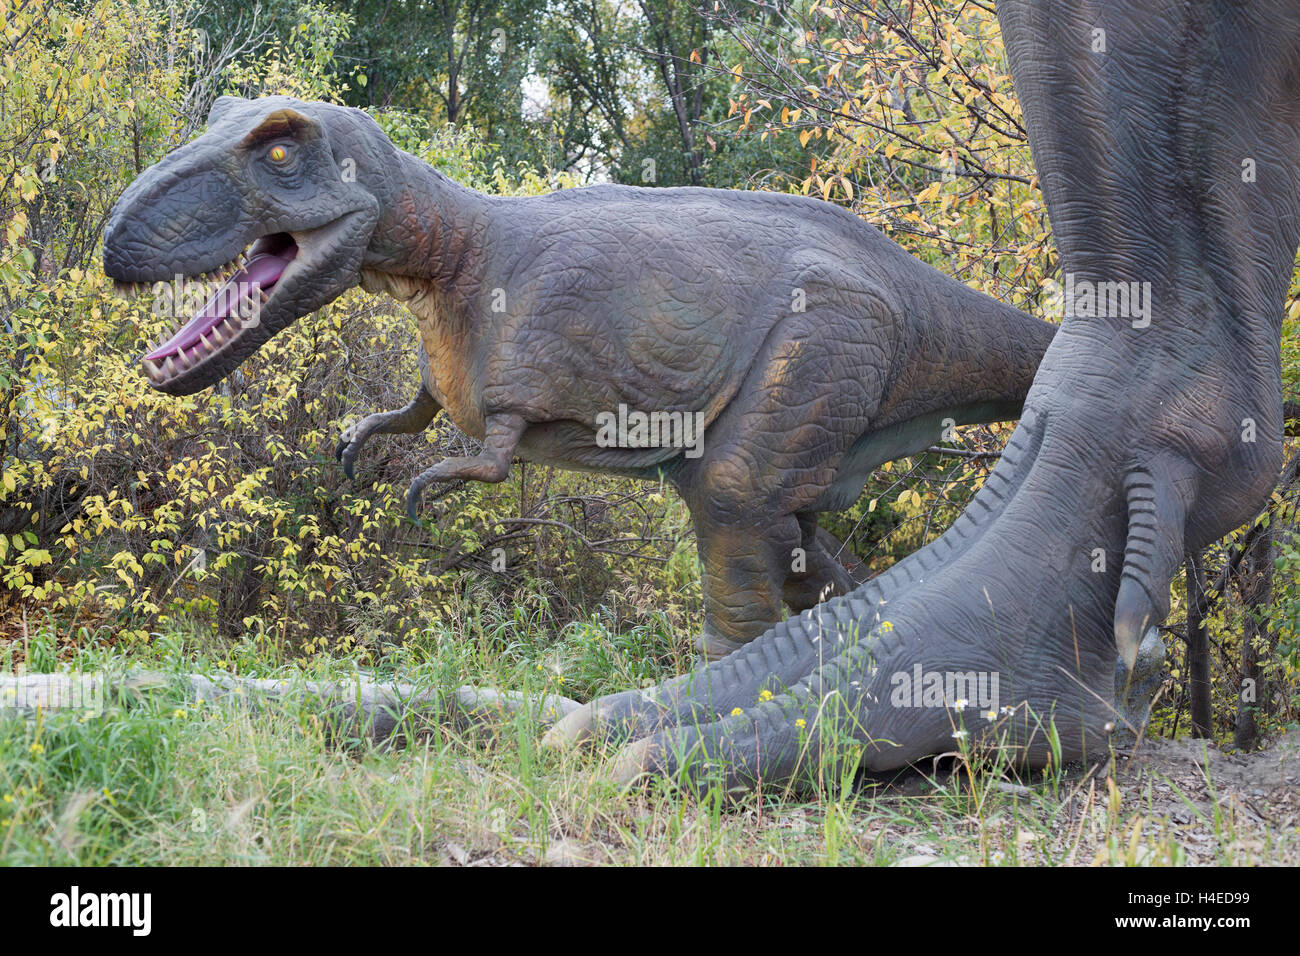 Tyrannosaurus rex baby beside foot of adult, dinosaur models at the Calgary Zoo prehistoric park - Stock Image